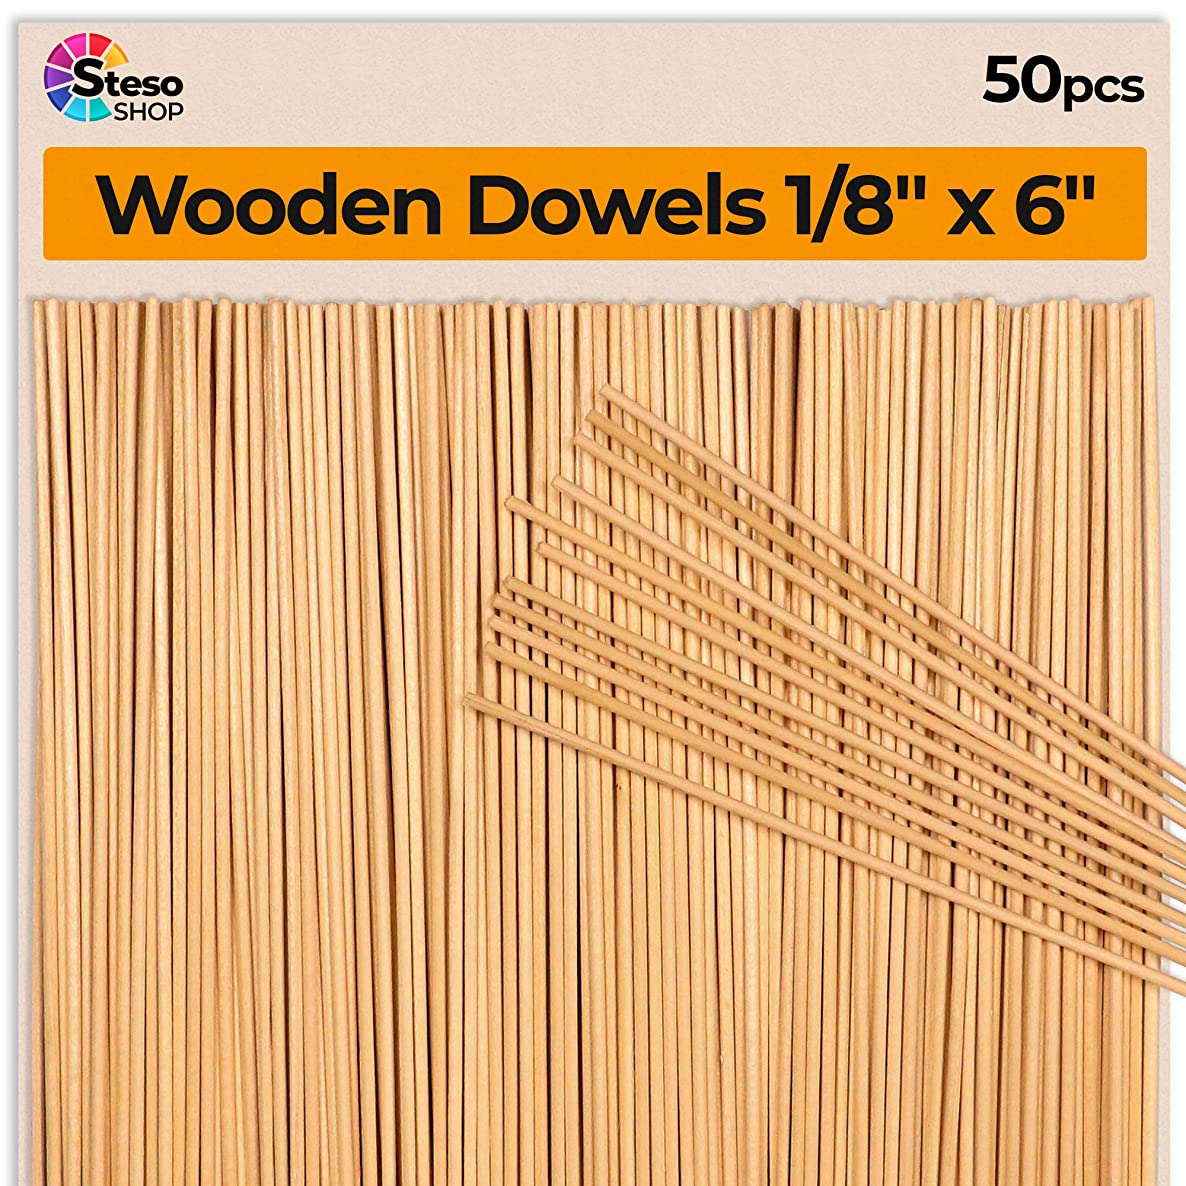 Wooden Dowel Rods 6 inch - 1/8 Hardwood Dowels - Craft Dowels for Woodworking Project 50 pcs - for Model Building Games Kids Crafts Handmade Gifts Home Decor (1/8)